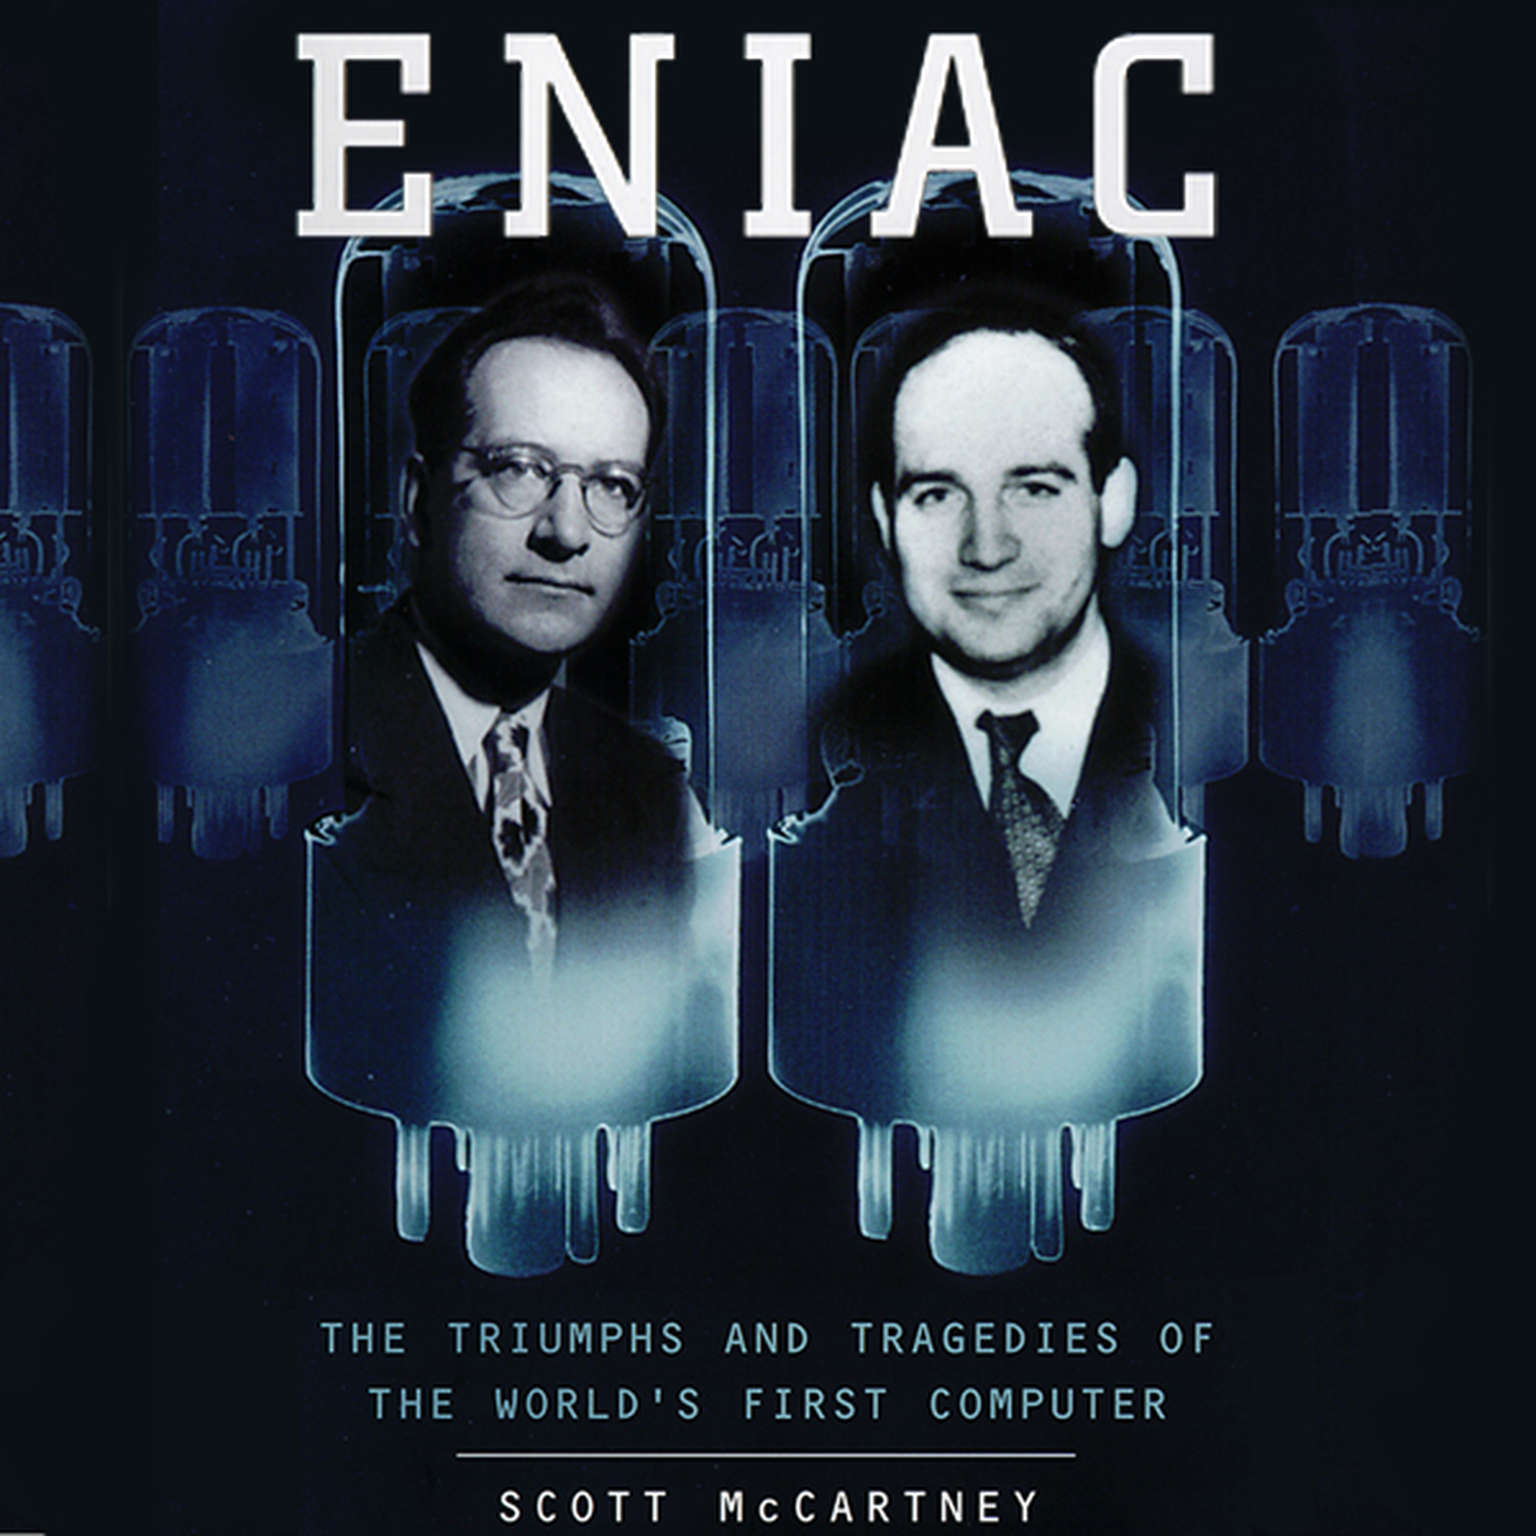 Printable ENIAC: The Triumphs and Tragedies of the World's First Computer Audiobook Cover Art